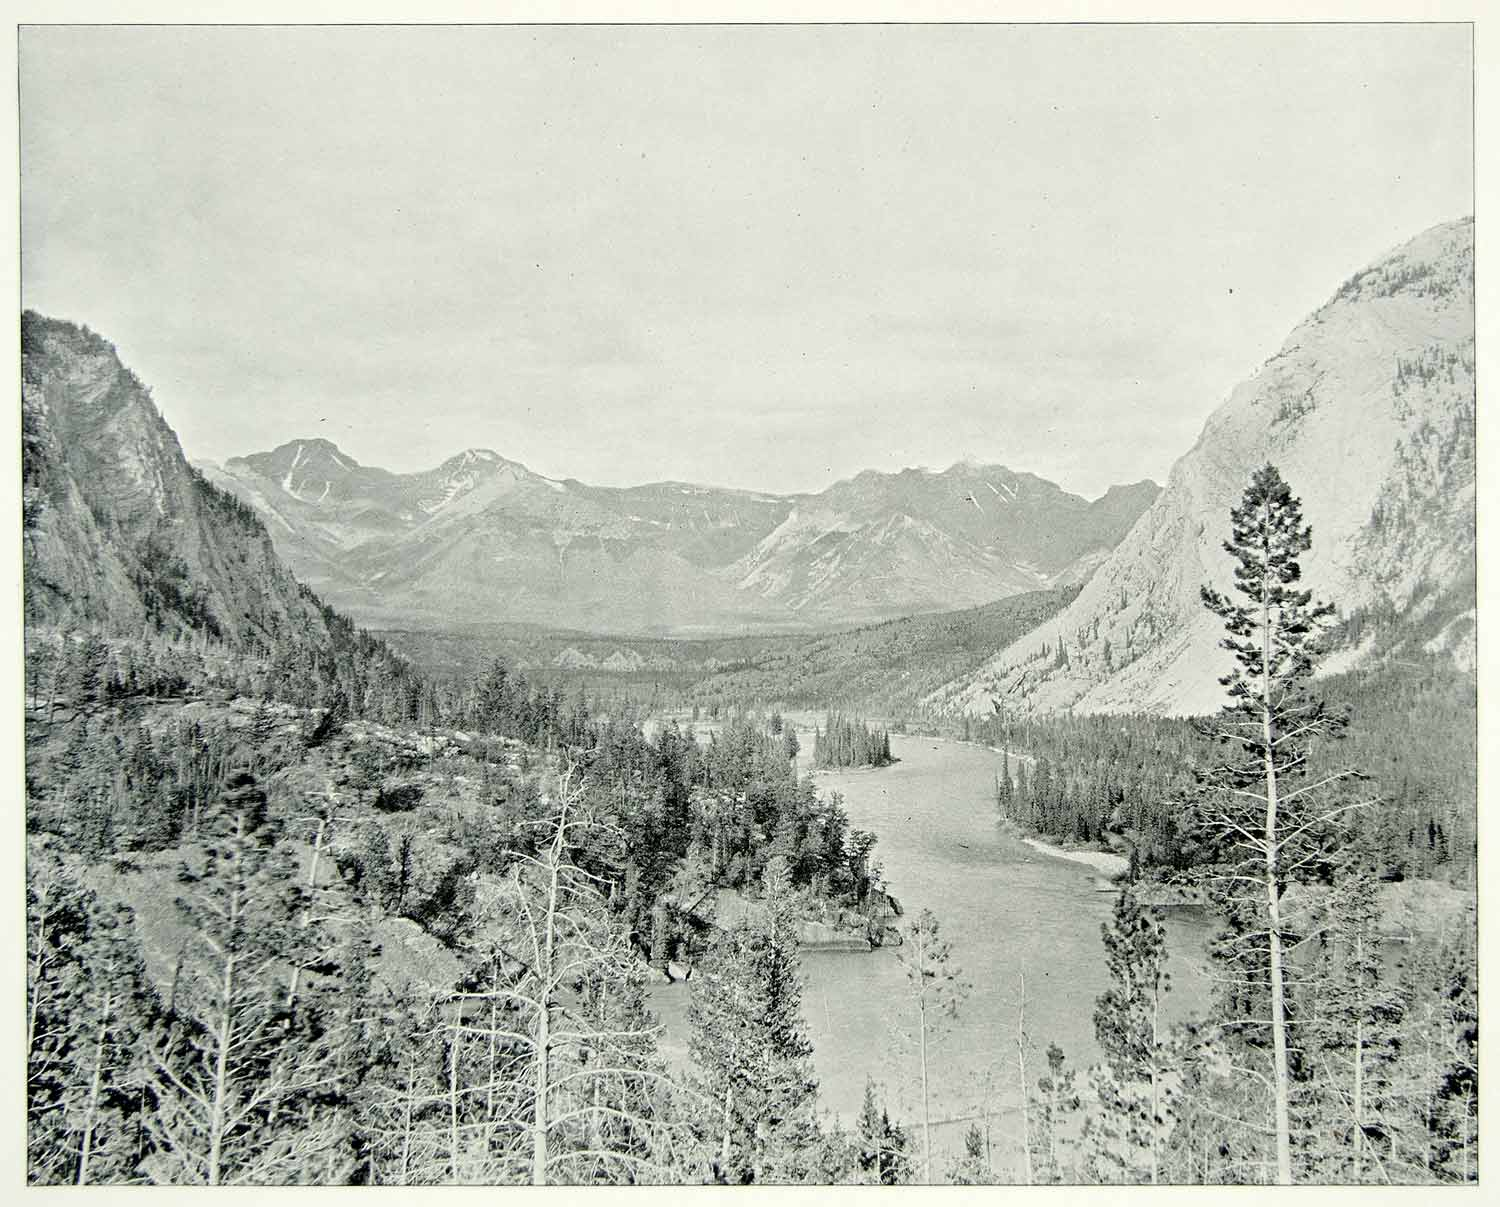 1894 Print Bow River Valley Gap Alberta Canada Rocky Mountains National Park AC1